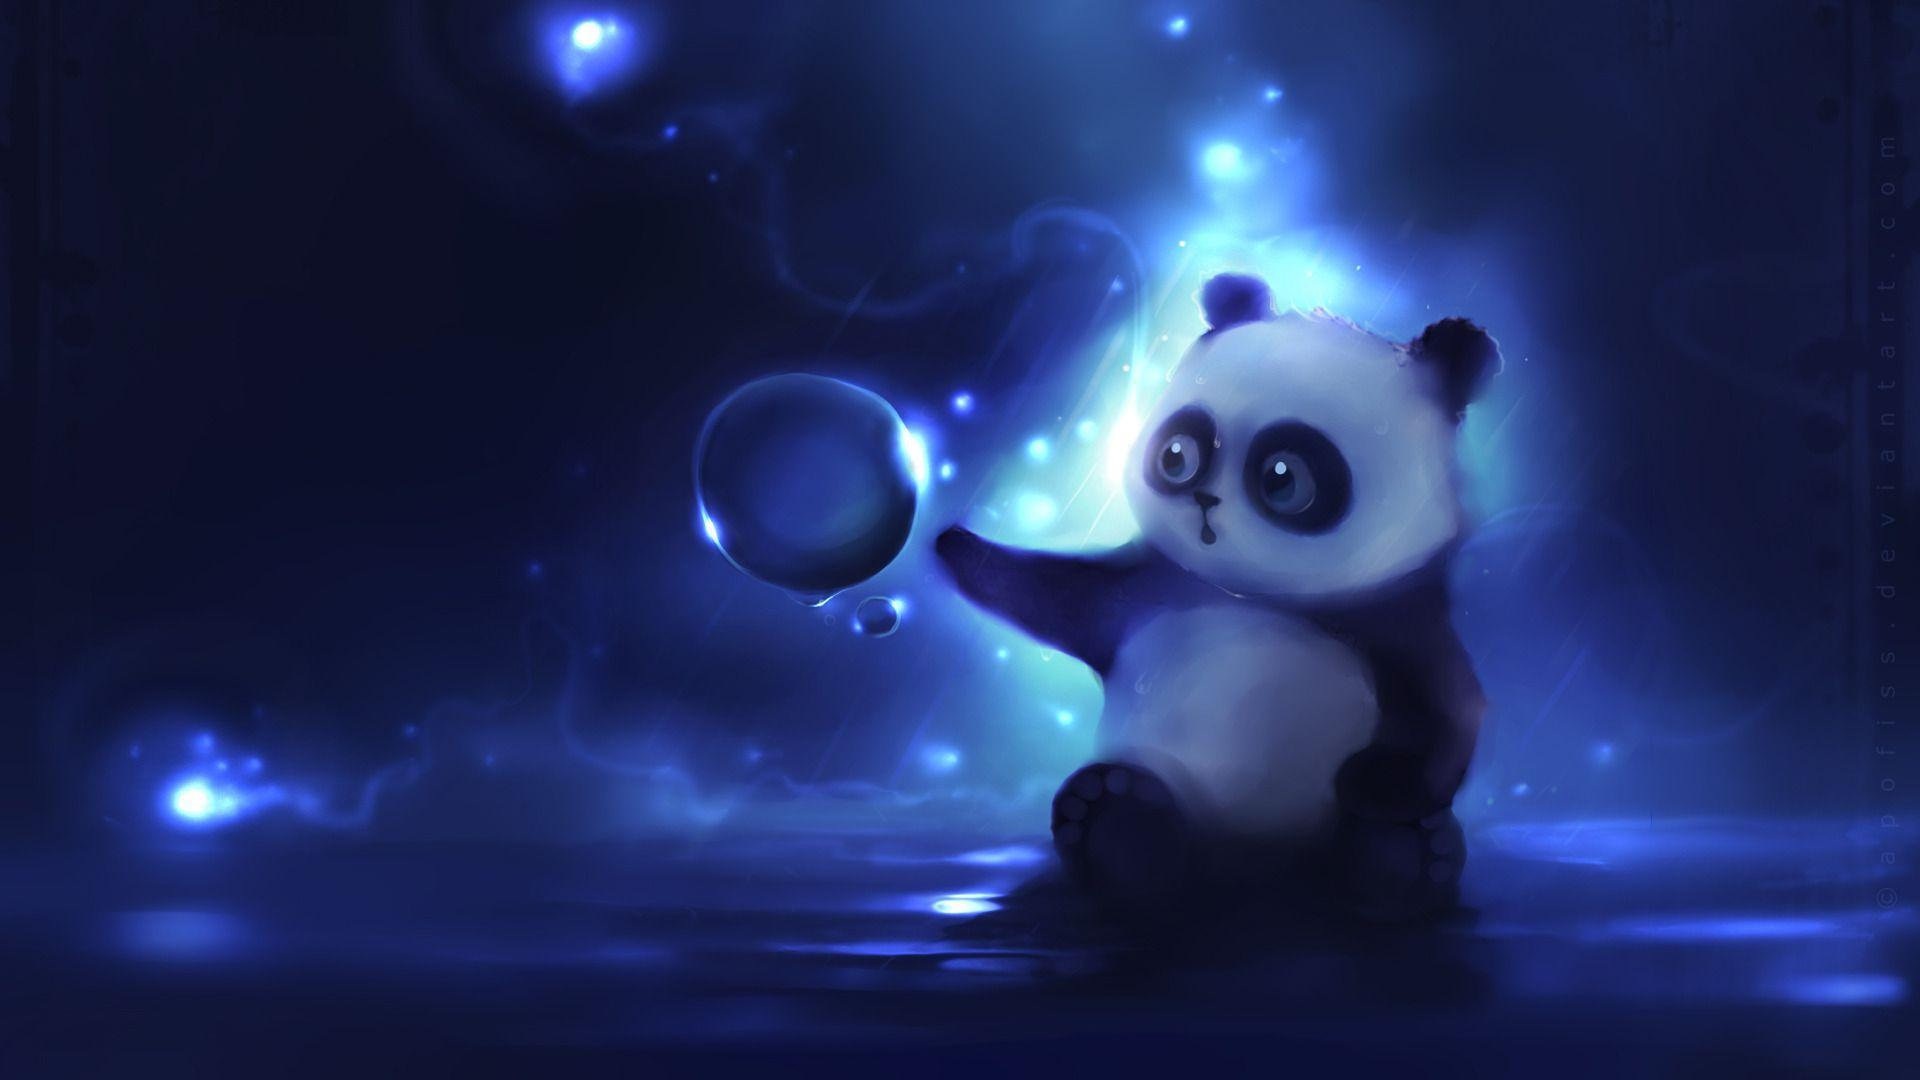 Desktop Panda Bear Pics Cartoon Dowload - Litle Pups